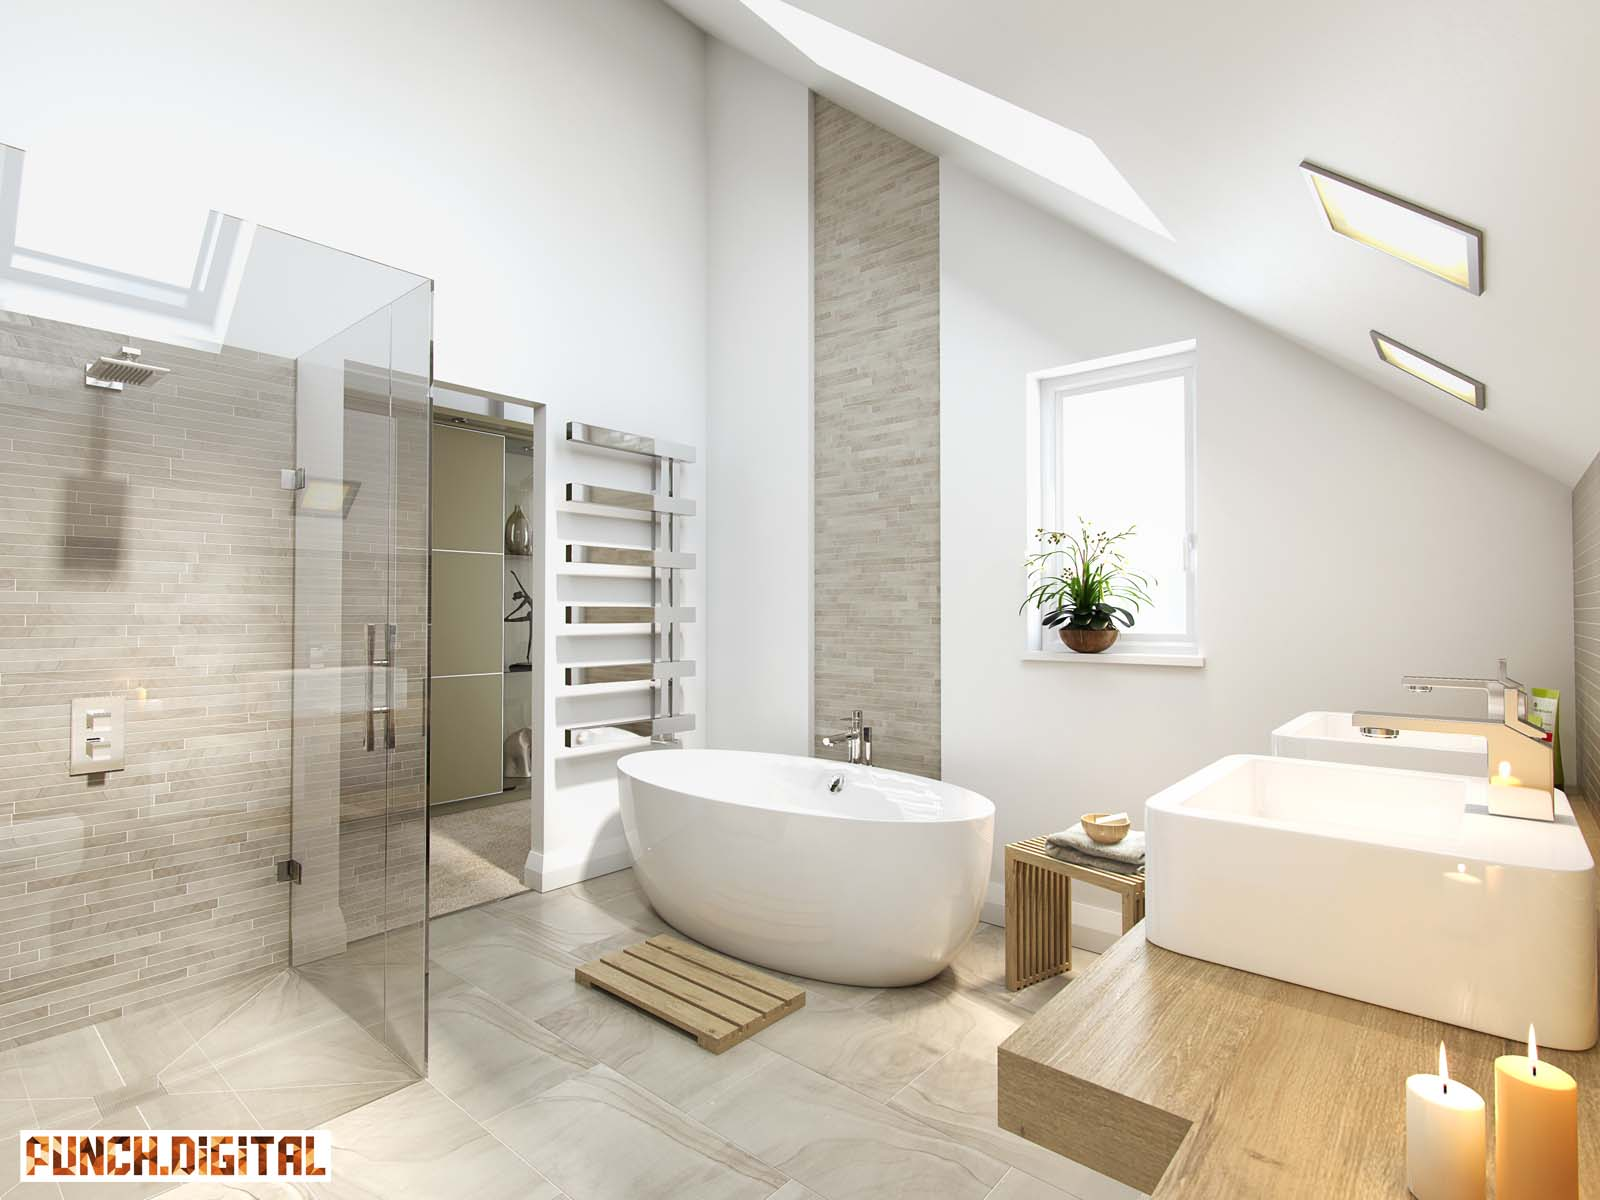 CGI Architectural Visualisation Visualisations Architecture Housing Development Animation Interior Internal KBB Bathroom